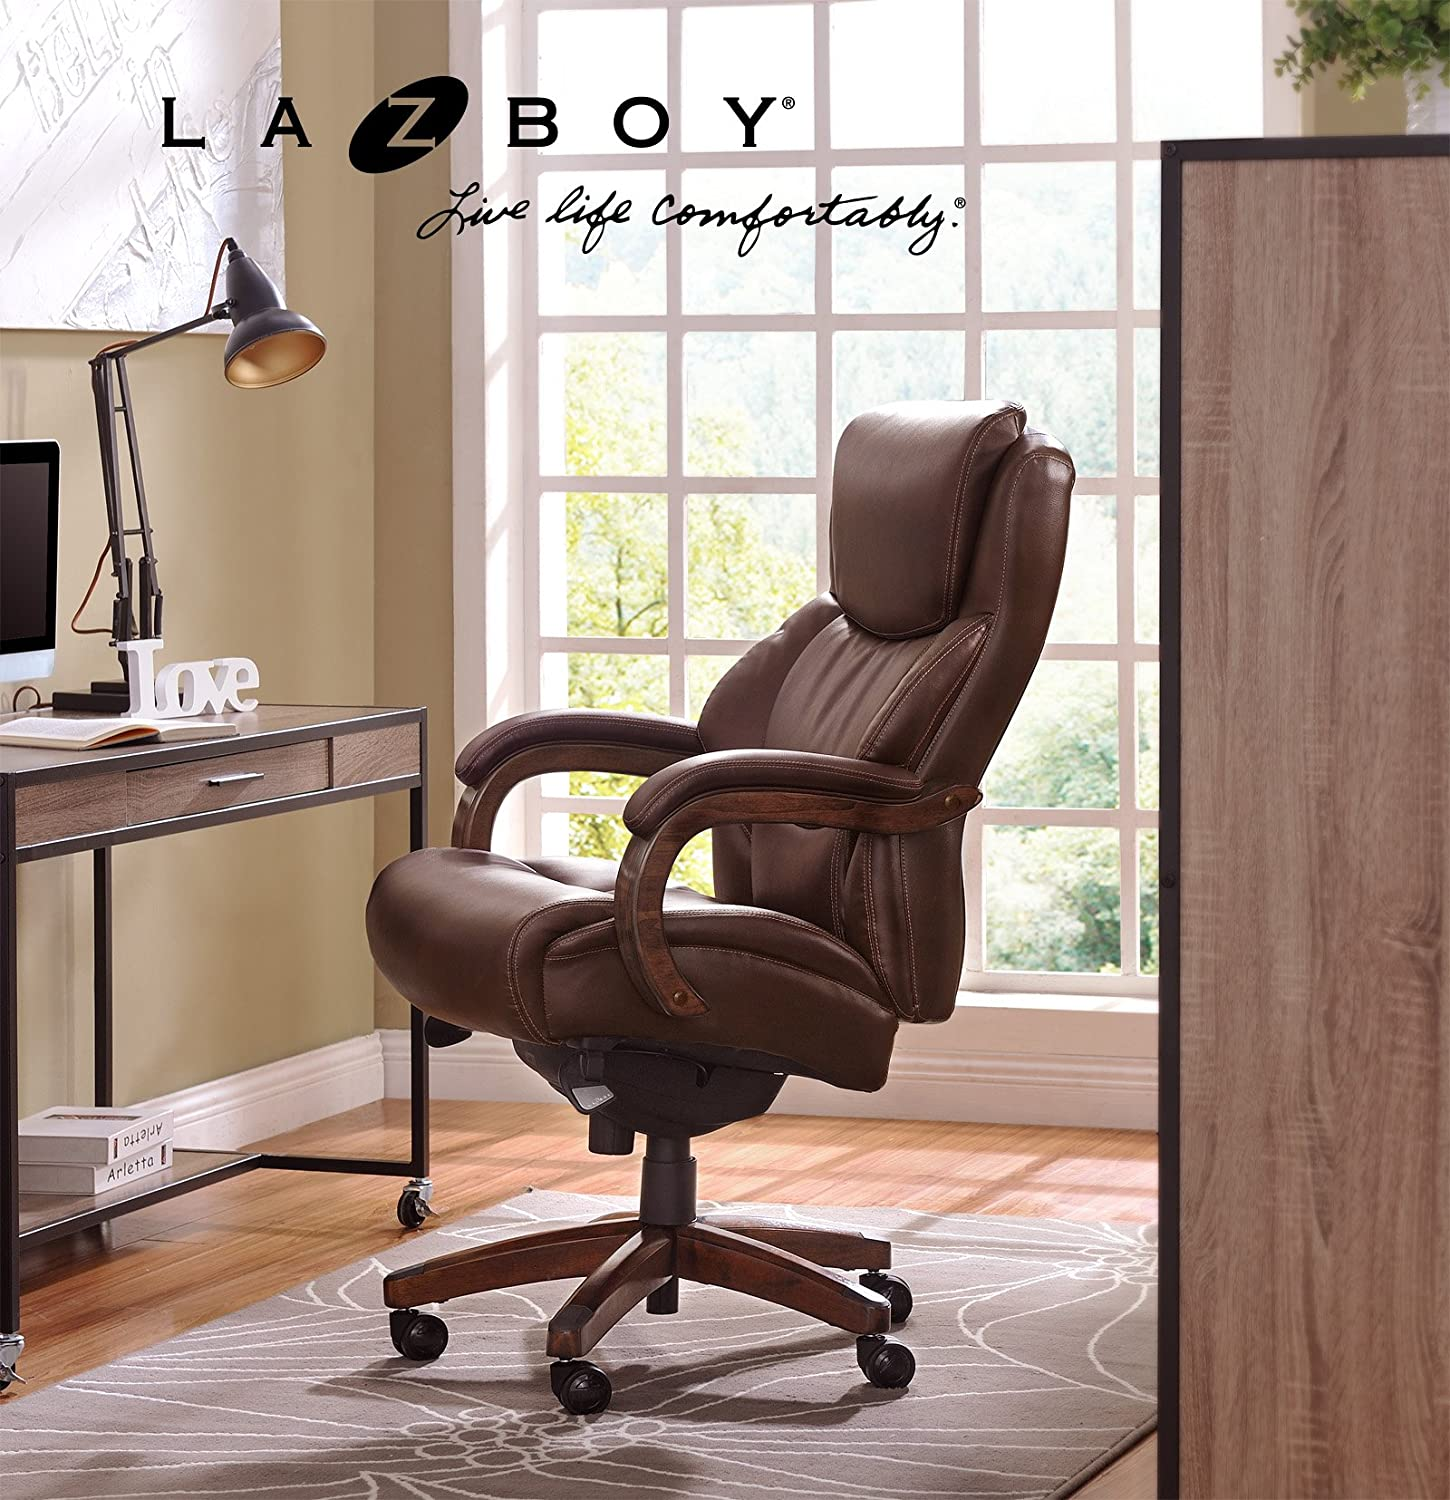 lobaedesign recliner chair elegant chairs intended com wallpapers amazing widescreen for boy desk office enjoyable throughout lazy leather